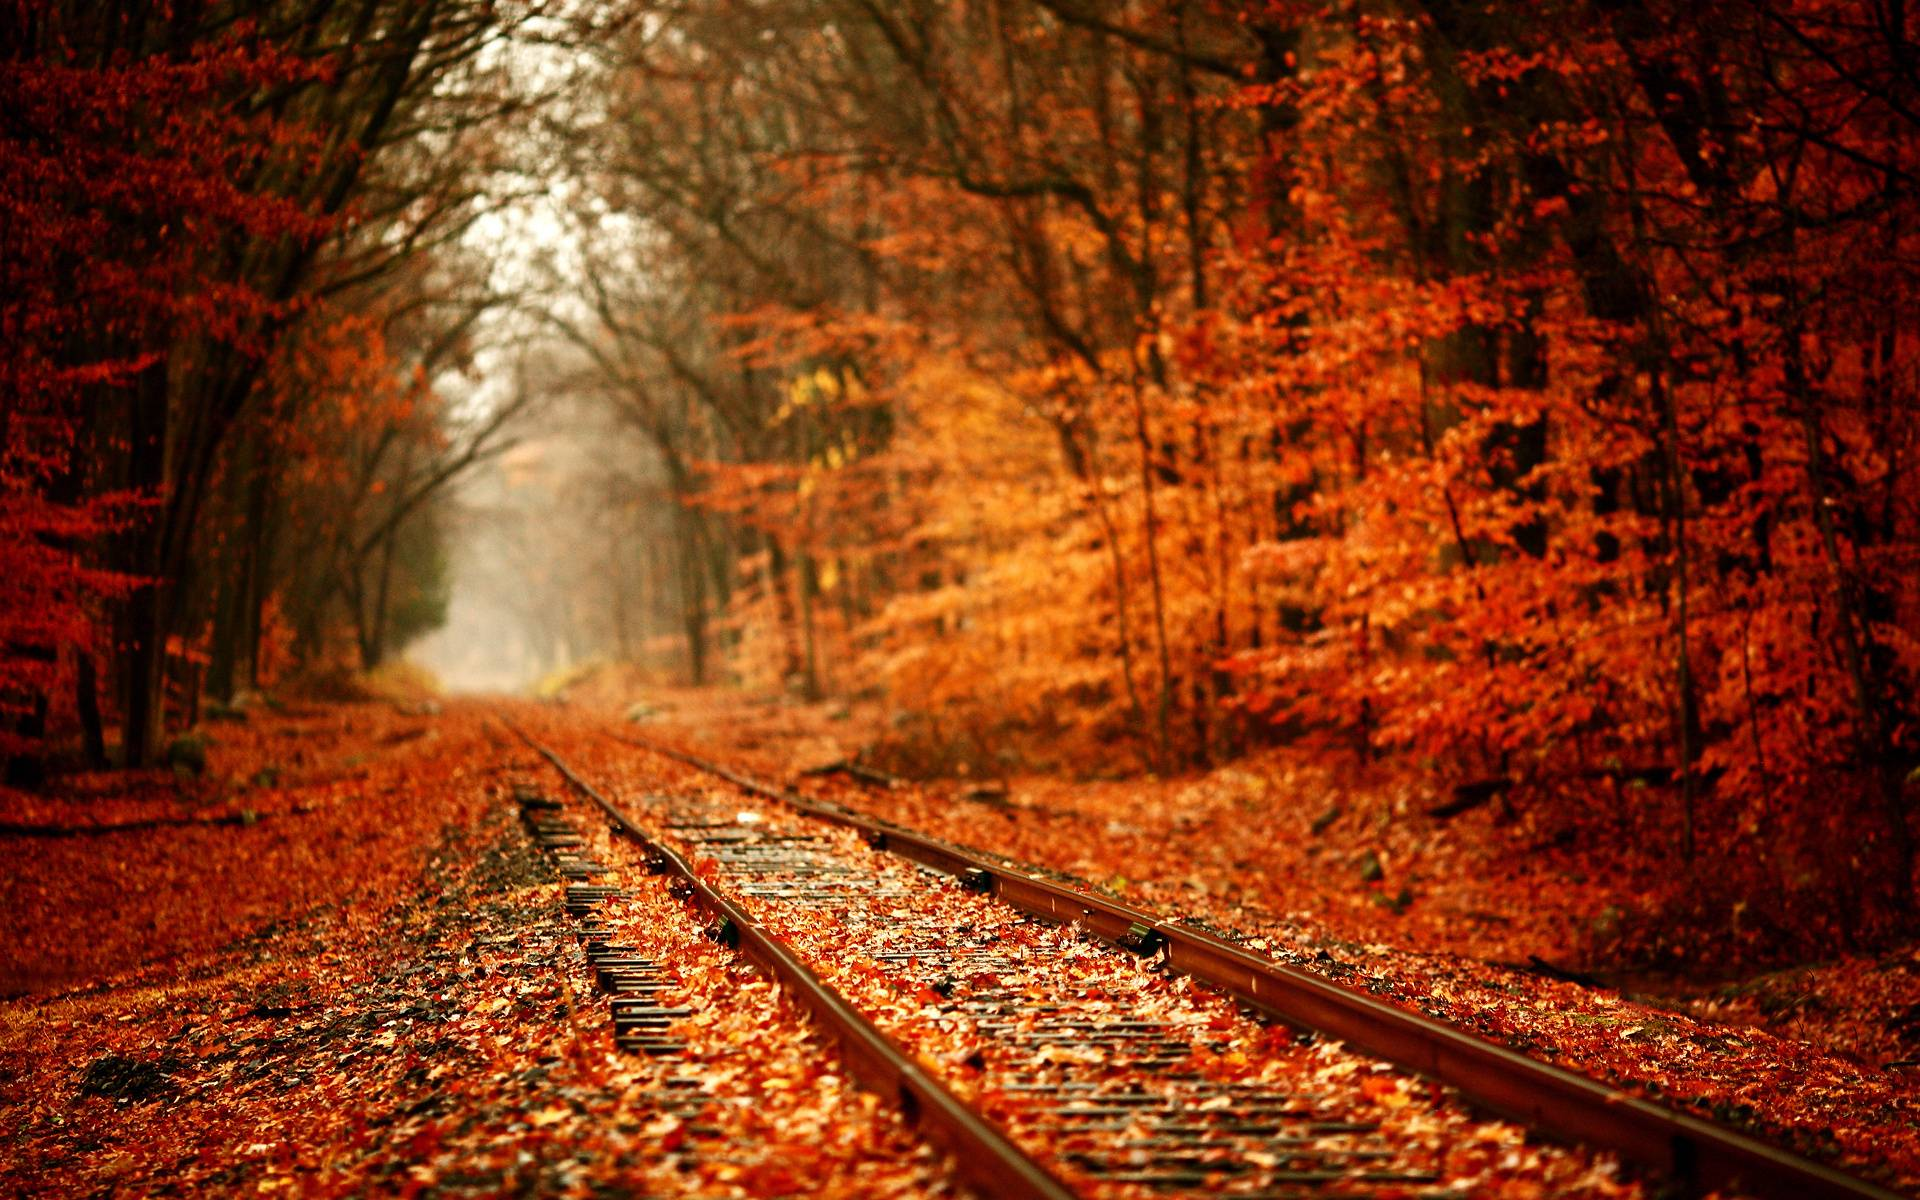 wallpapers for fall leaves backgrounds tumblr